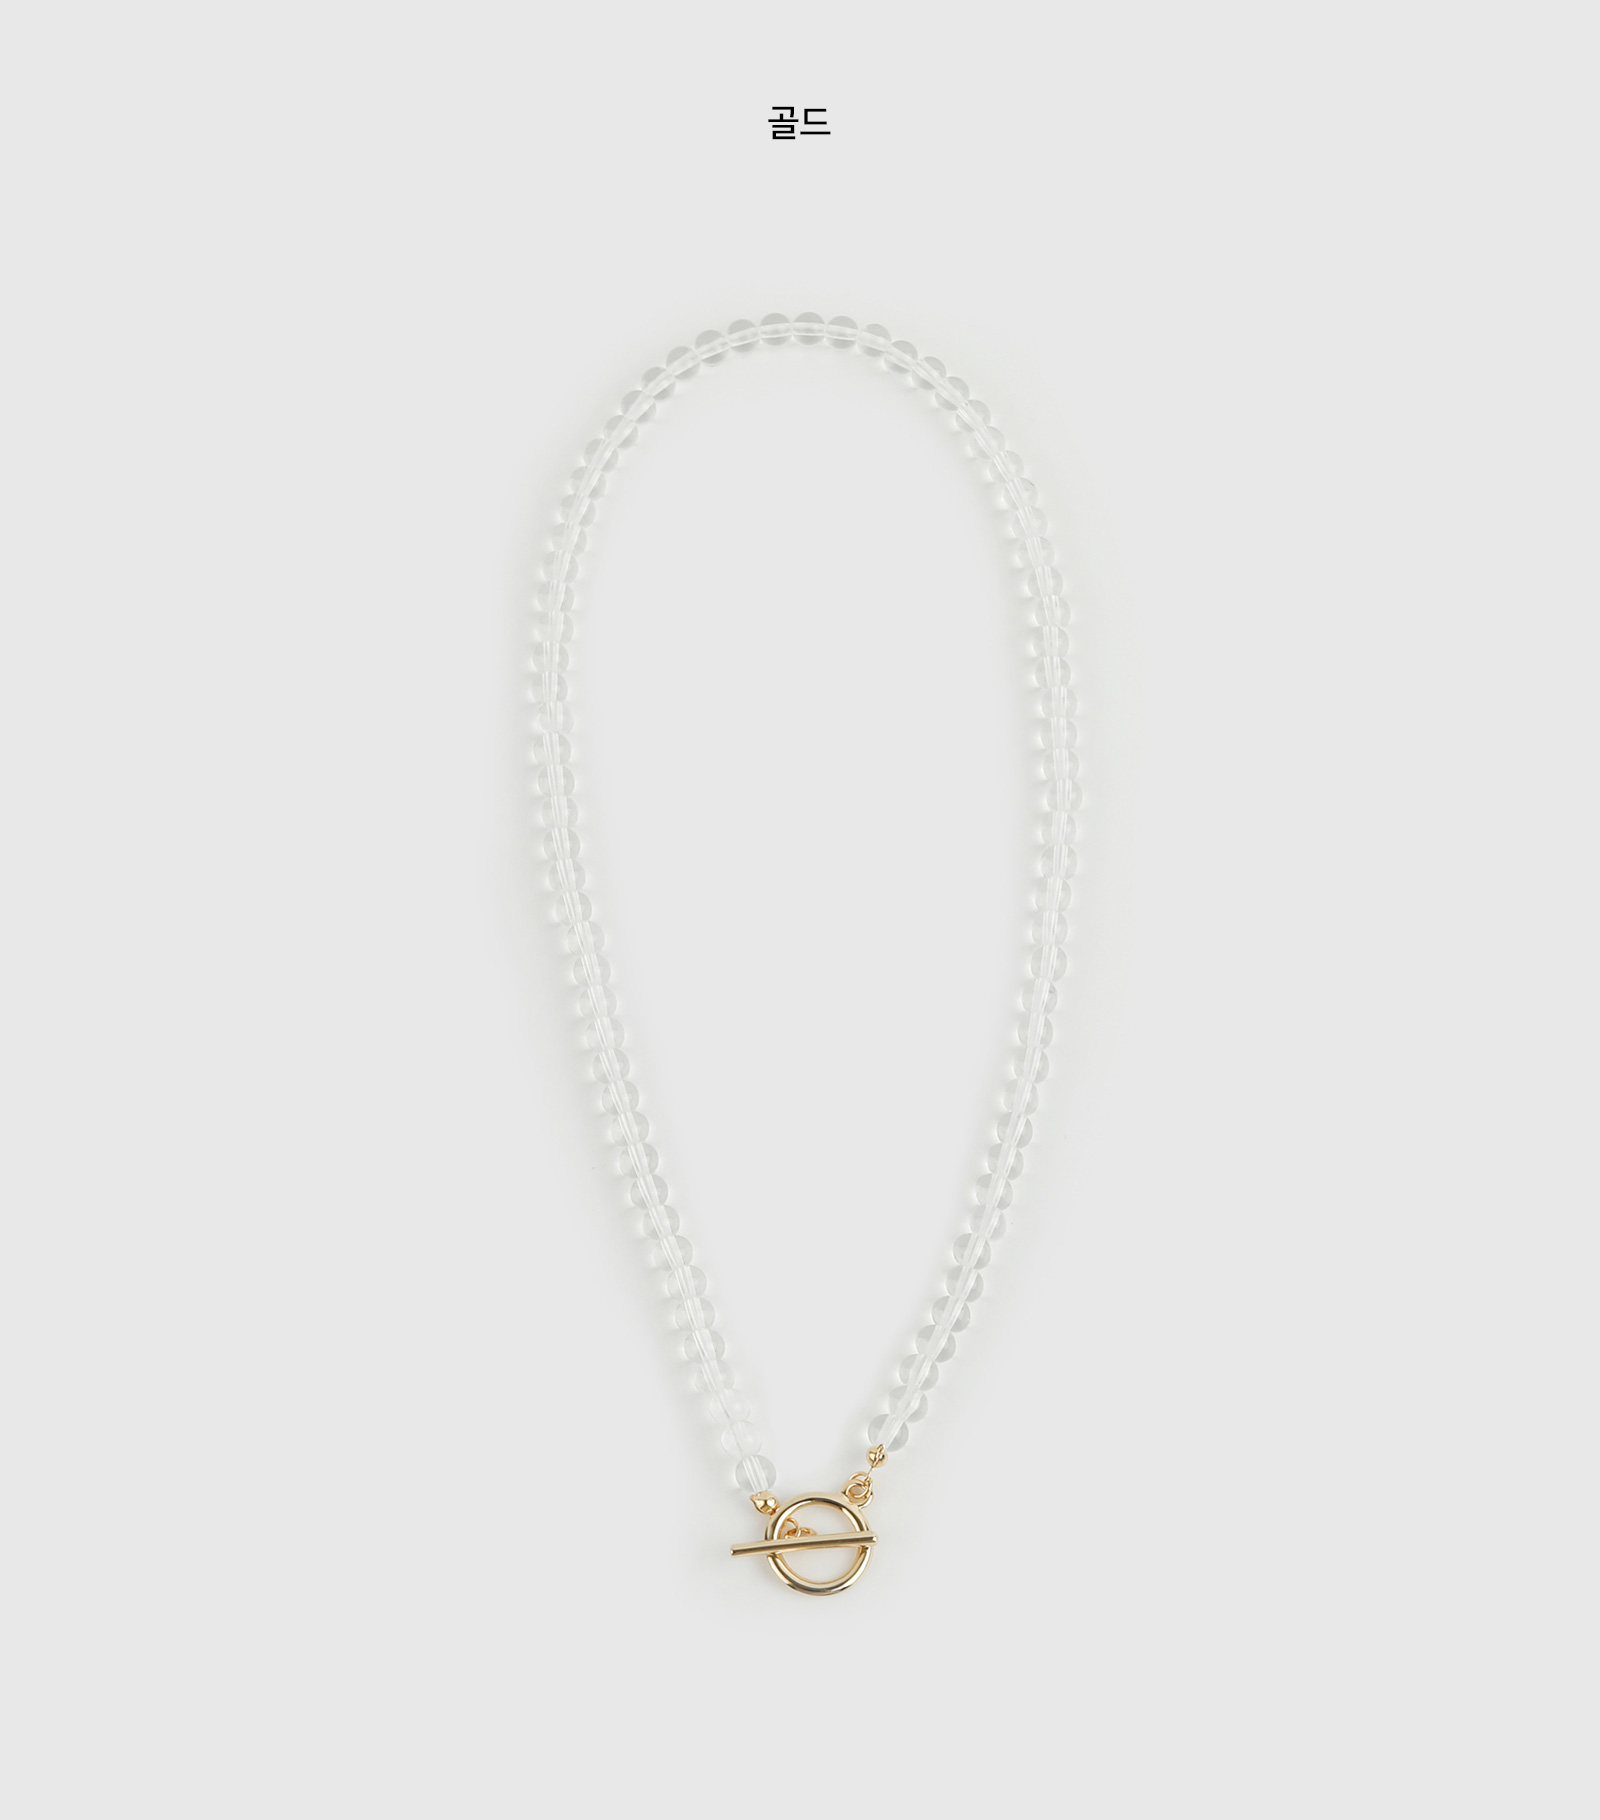 Mary clear necklace